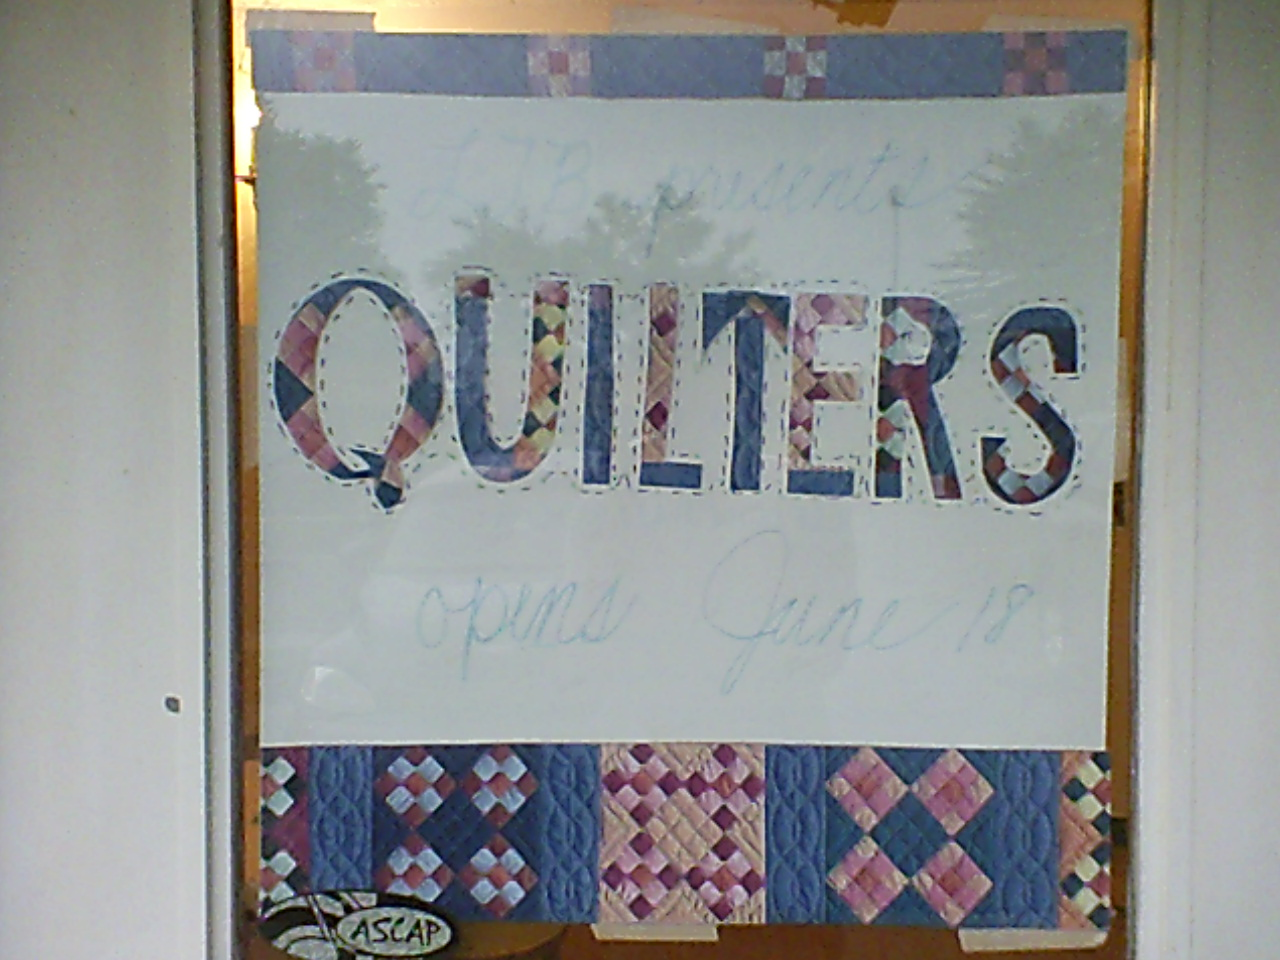 Quilters 019.jpg